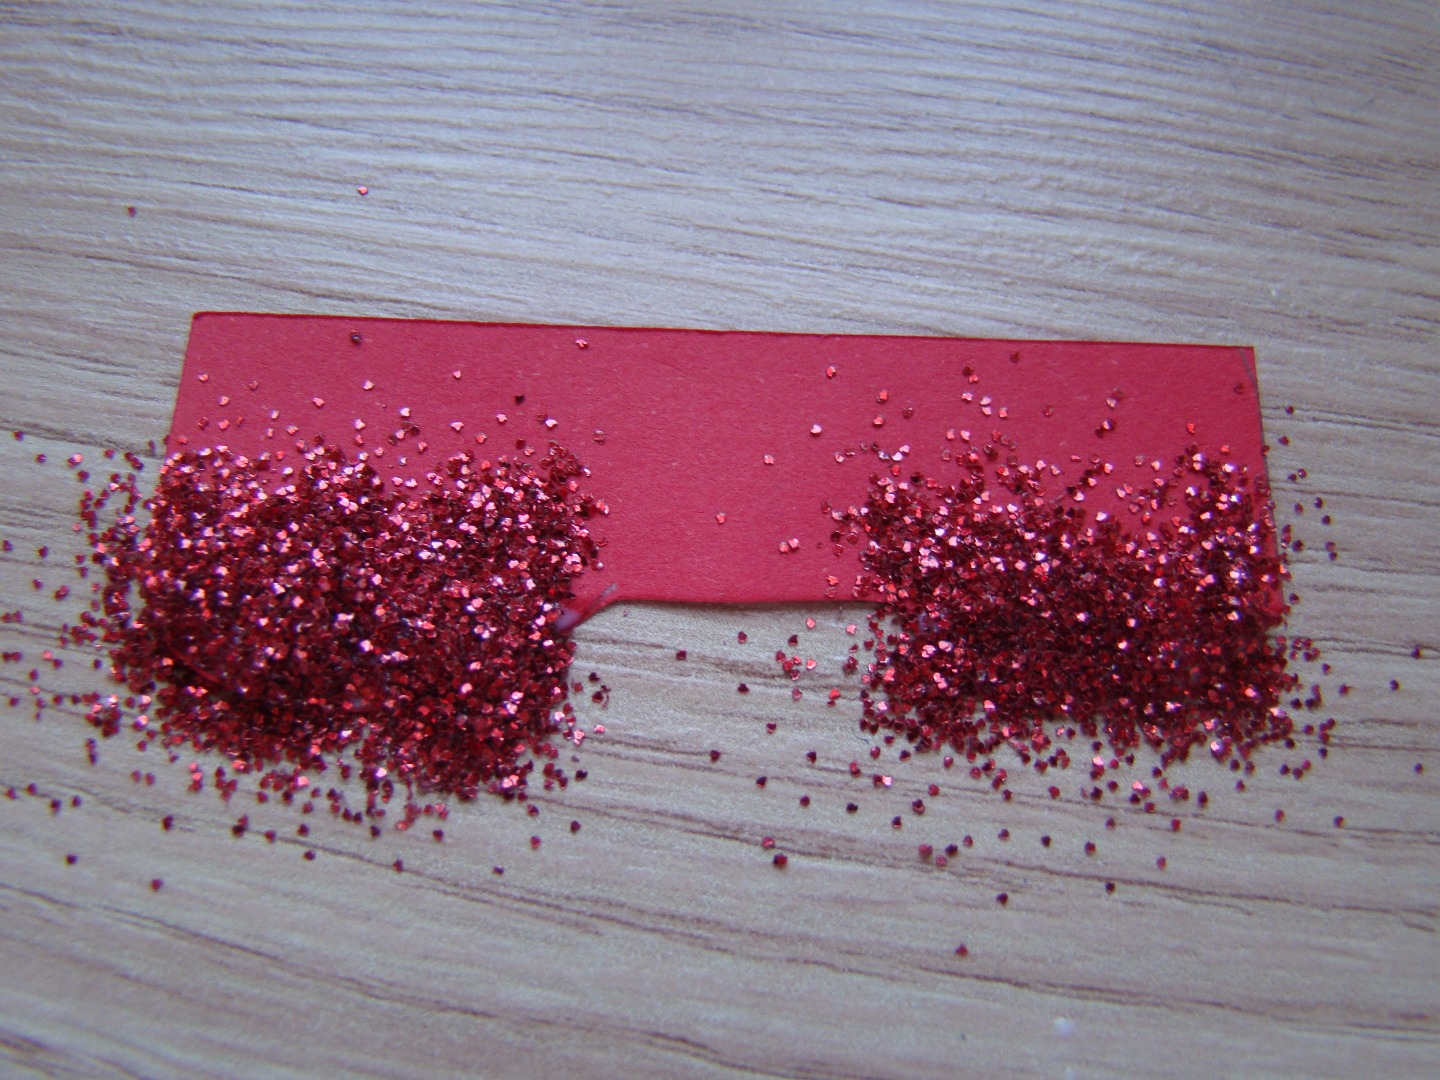 Picture of The Glitter !!